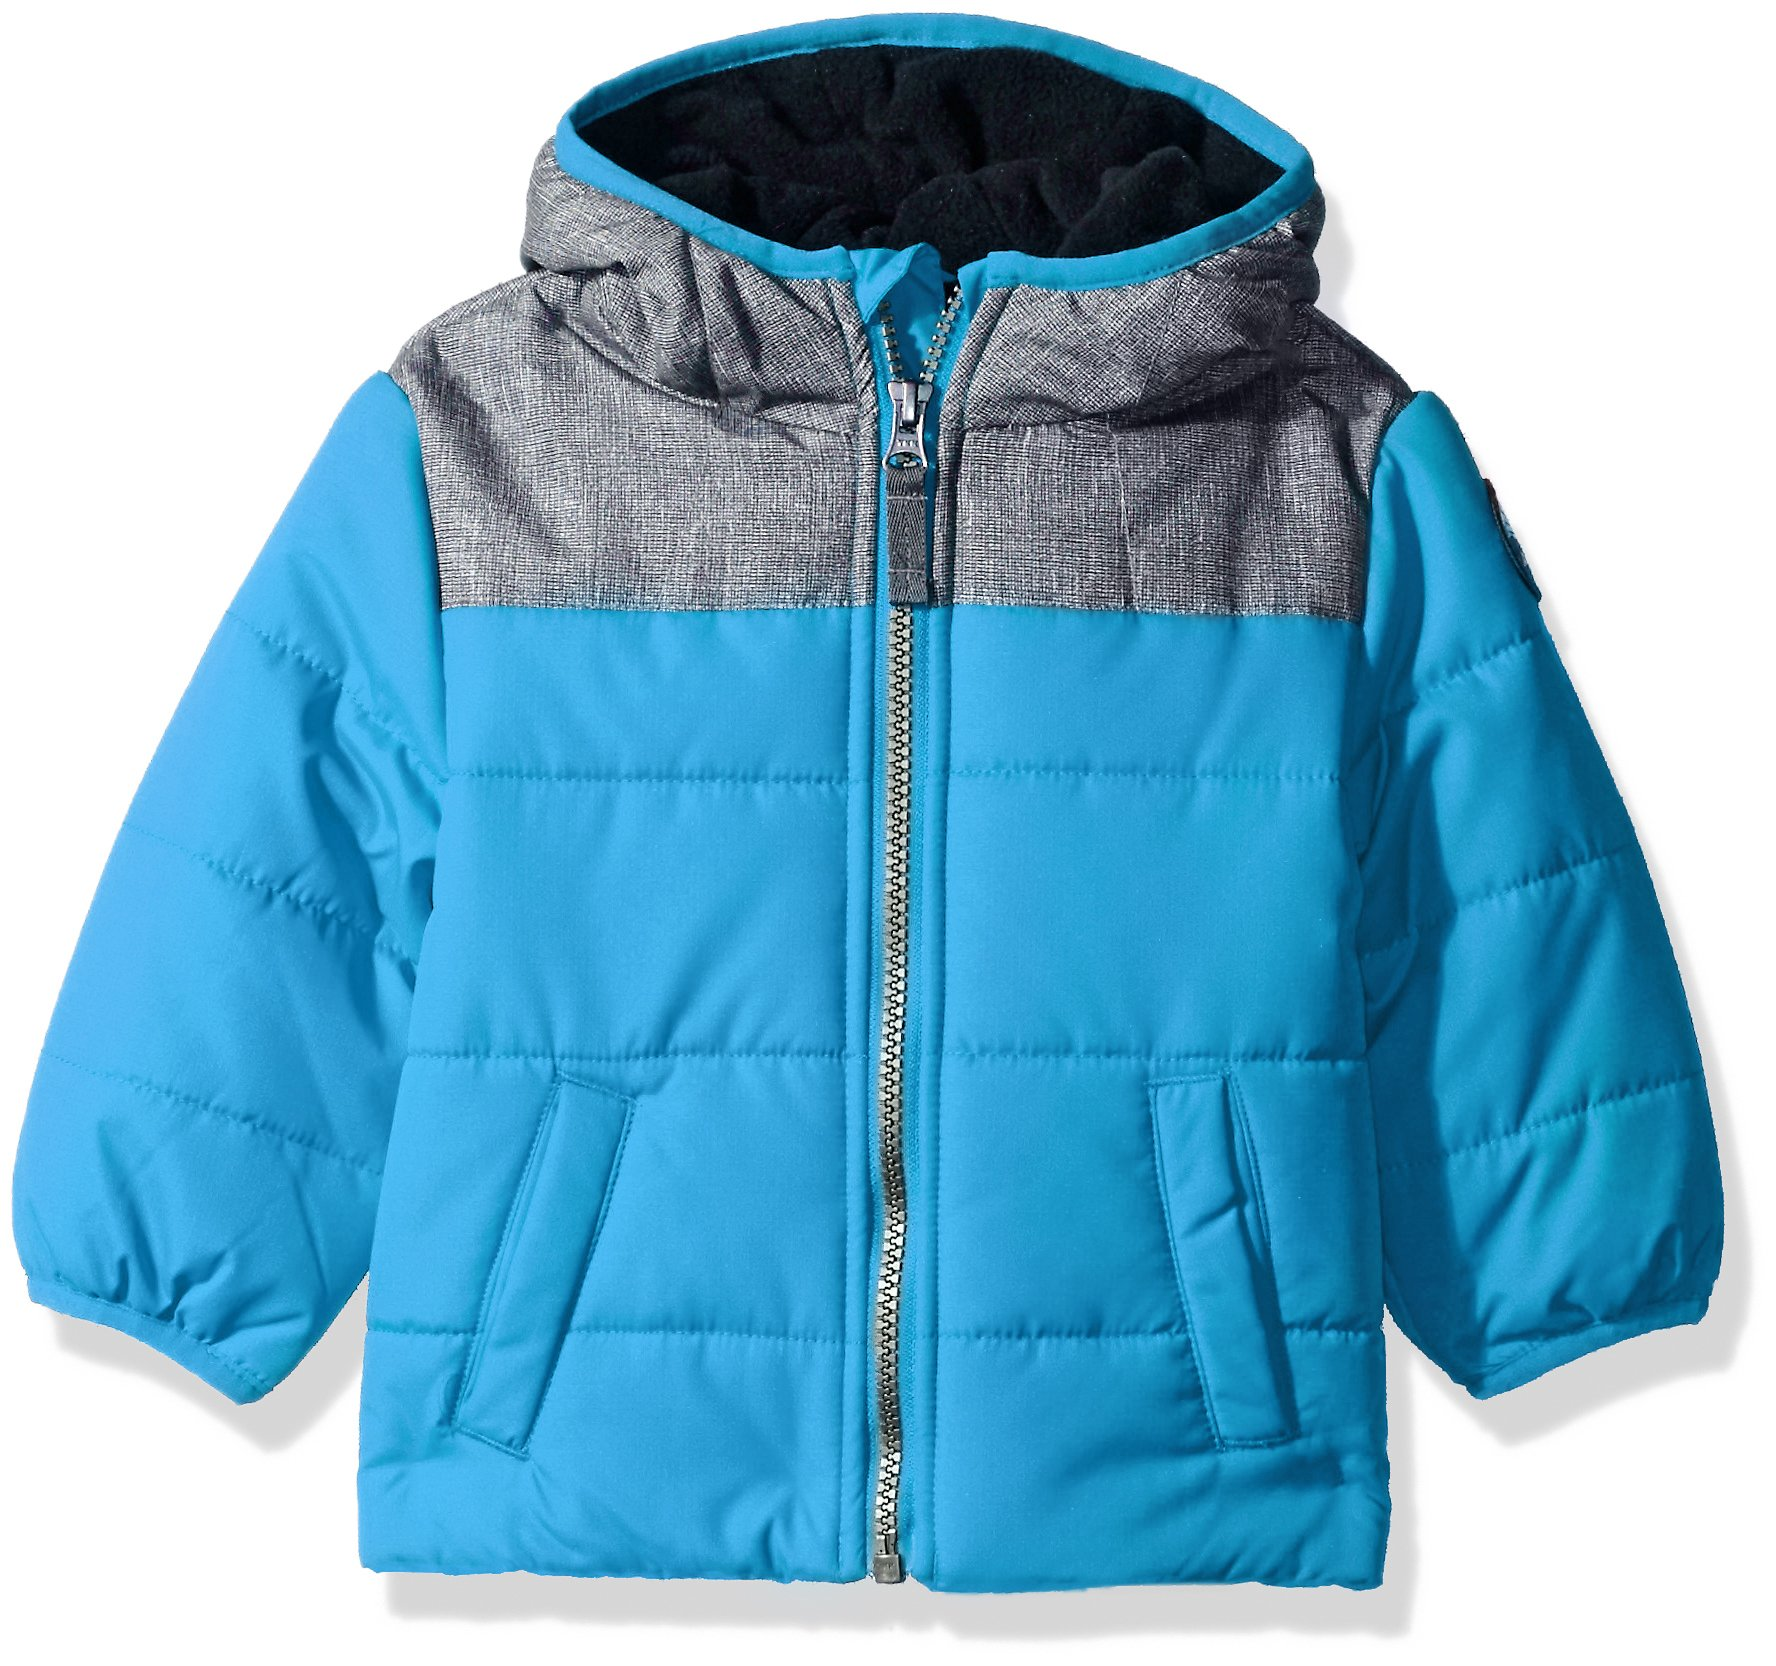 Carter's Baby Boys Puffer Jacket Coat with Soft Fabric Yolk, Teal/Navy, 12M by Carter's